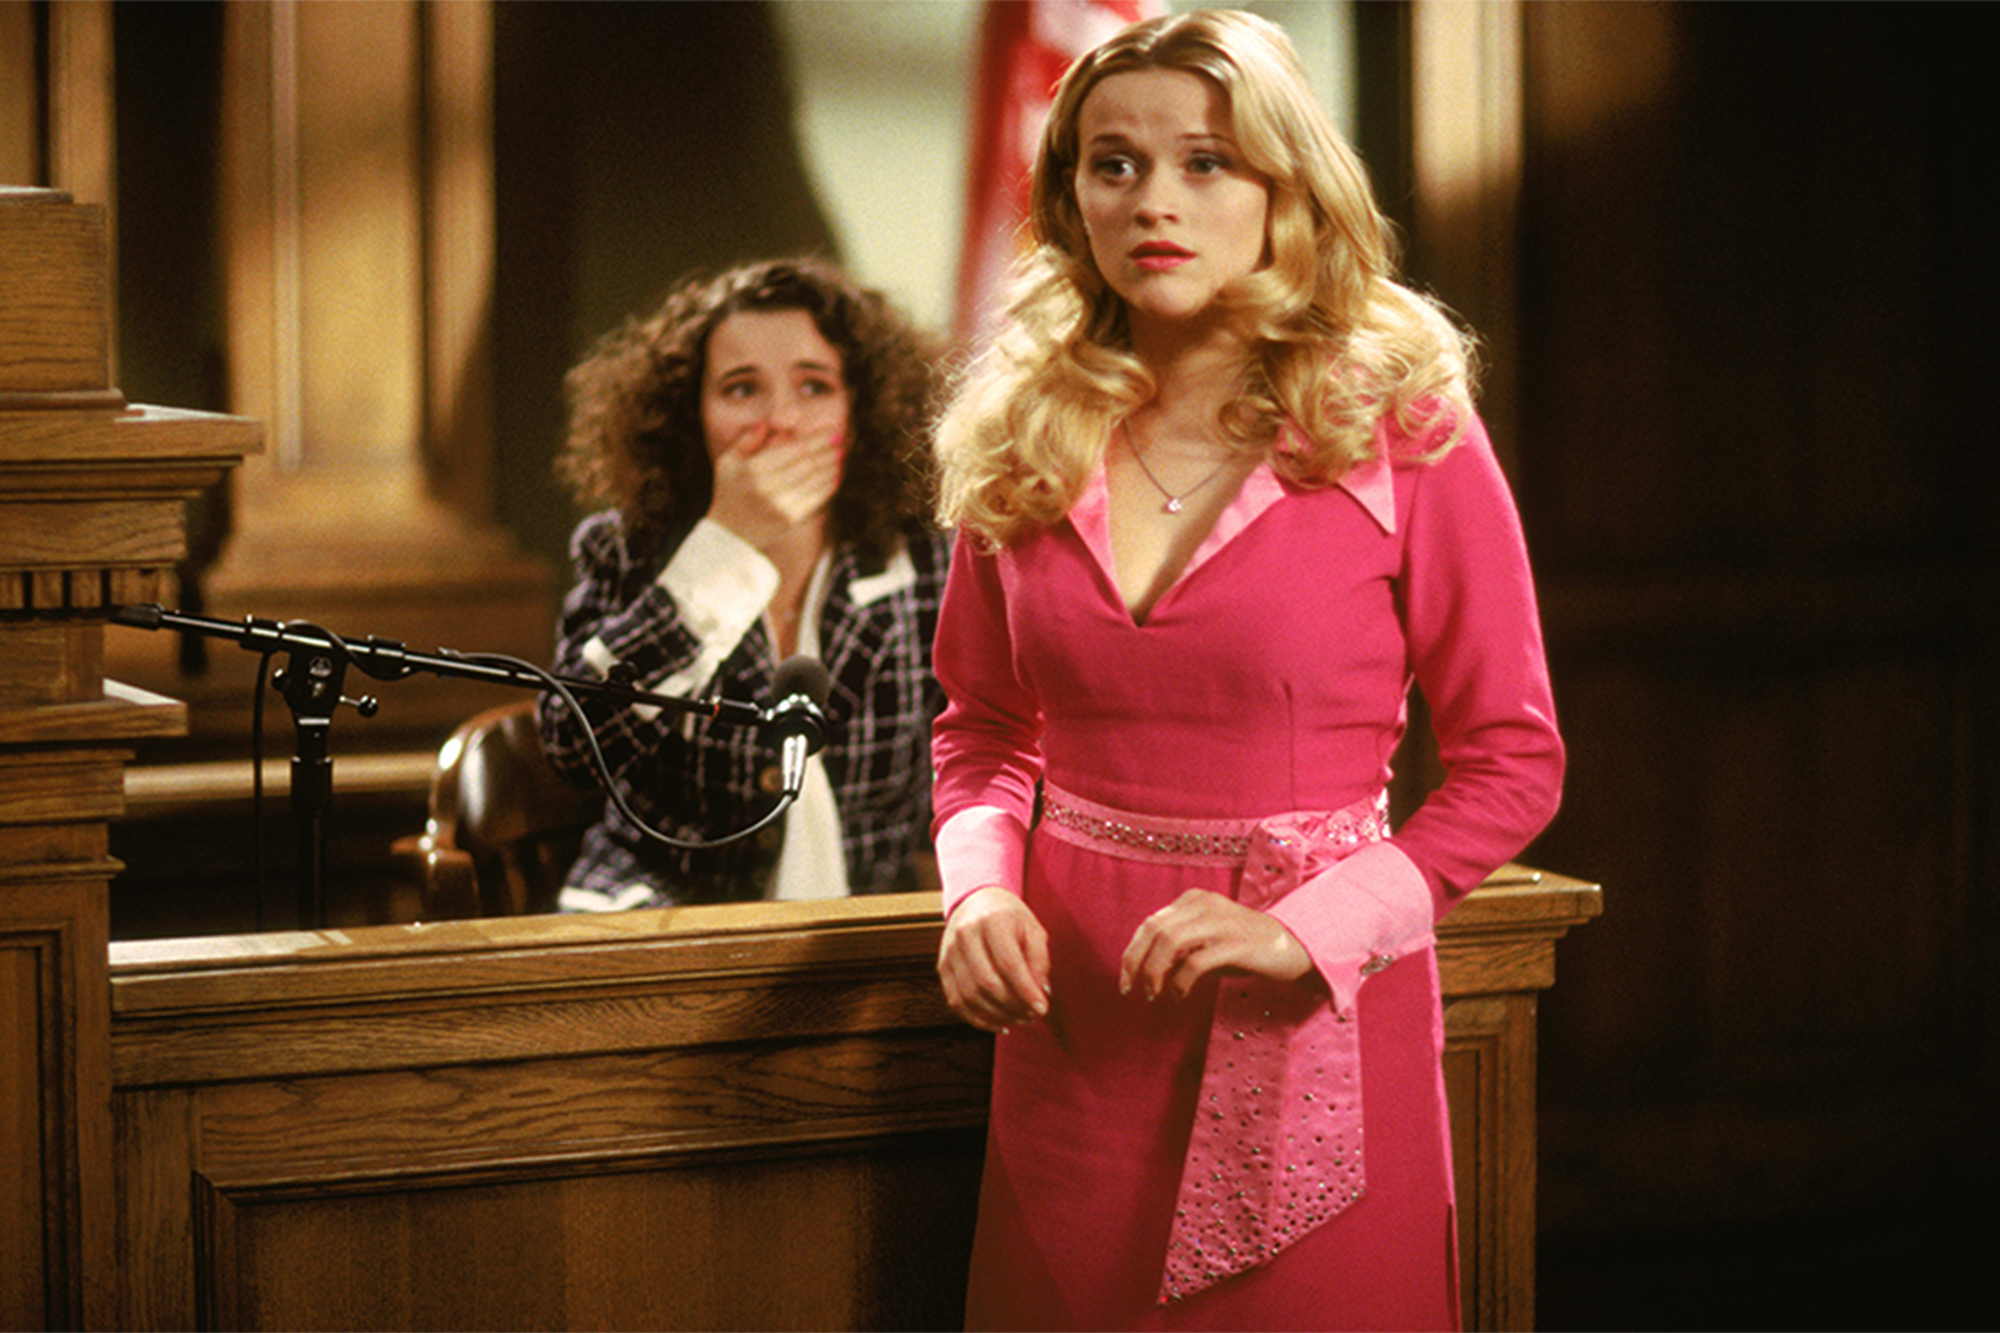 'Legally Blonde 3' delayed until 2022 amid COVID-19